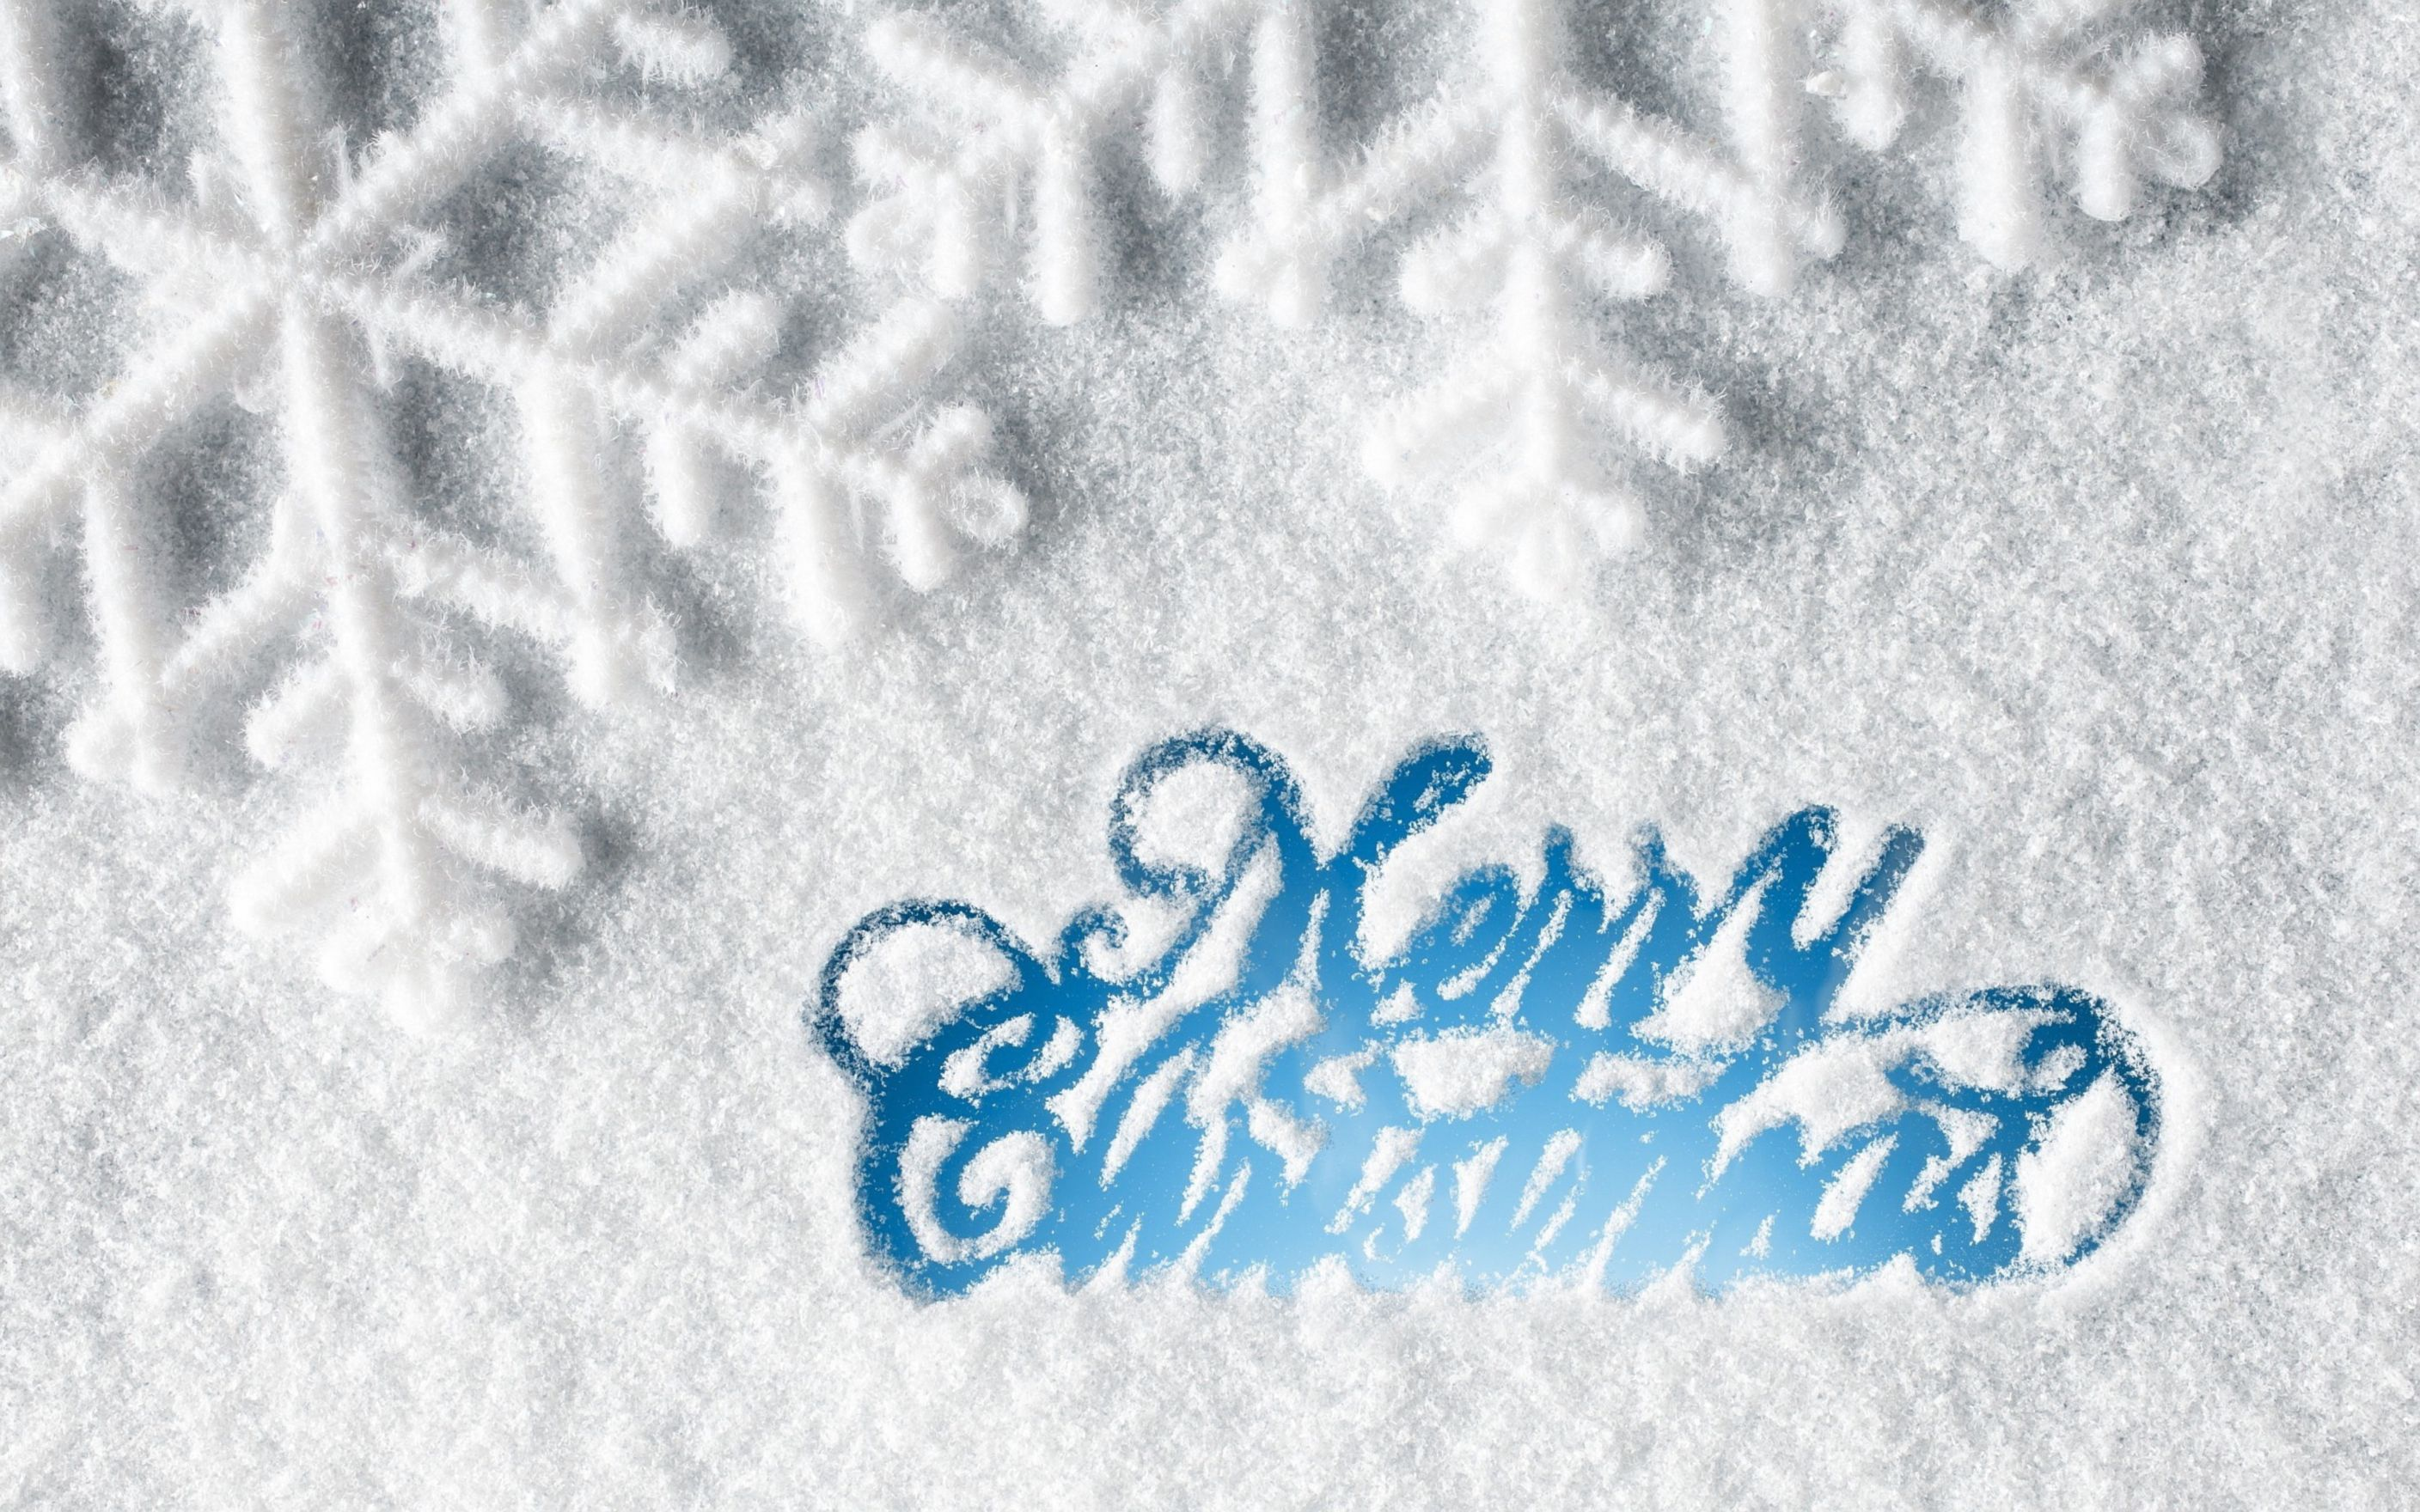 Merry Christmas Snow Wide Wallpaper Desktop Hd Wallpaper Download Free Image Picture Photo On Dailyhdwallpaper Com 4095